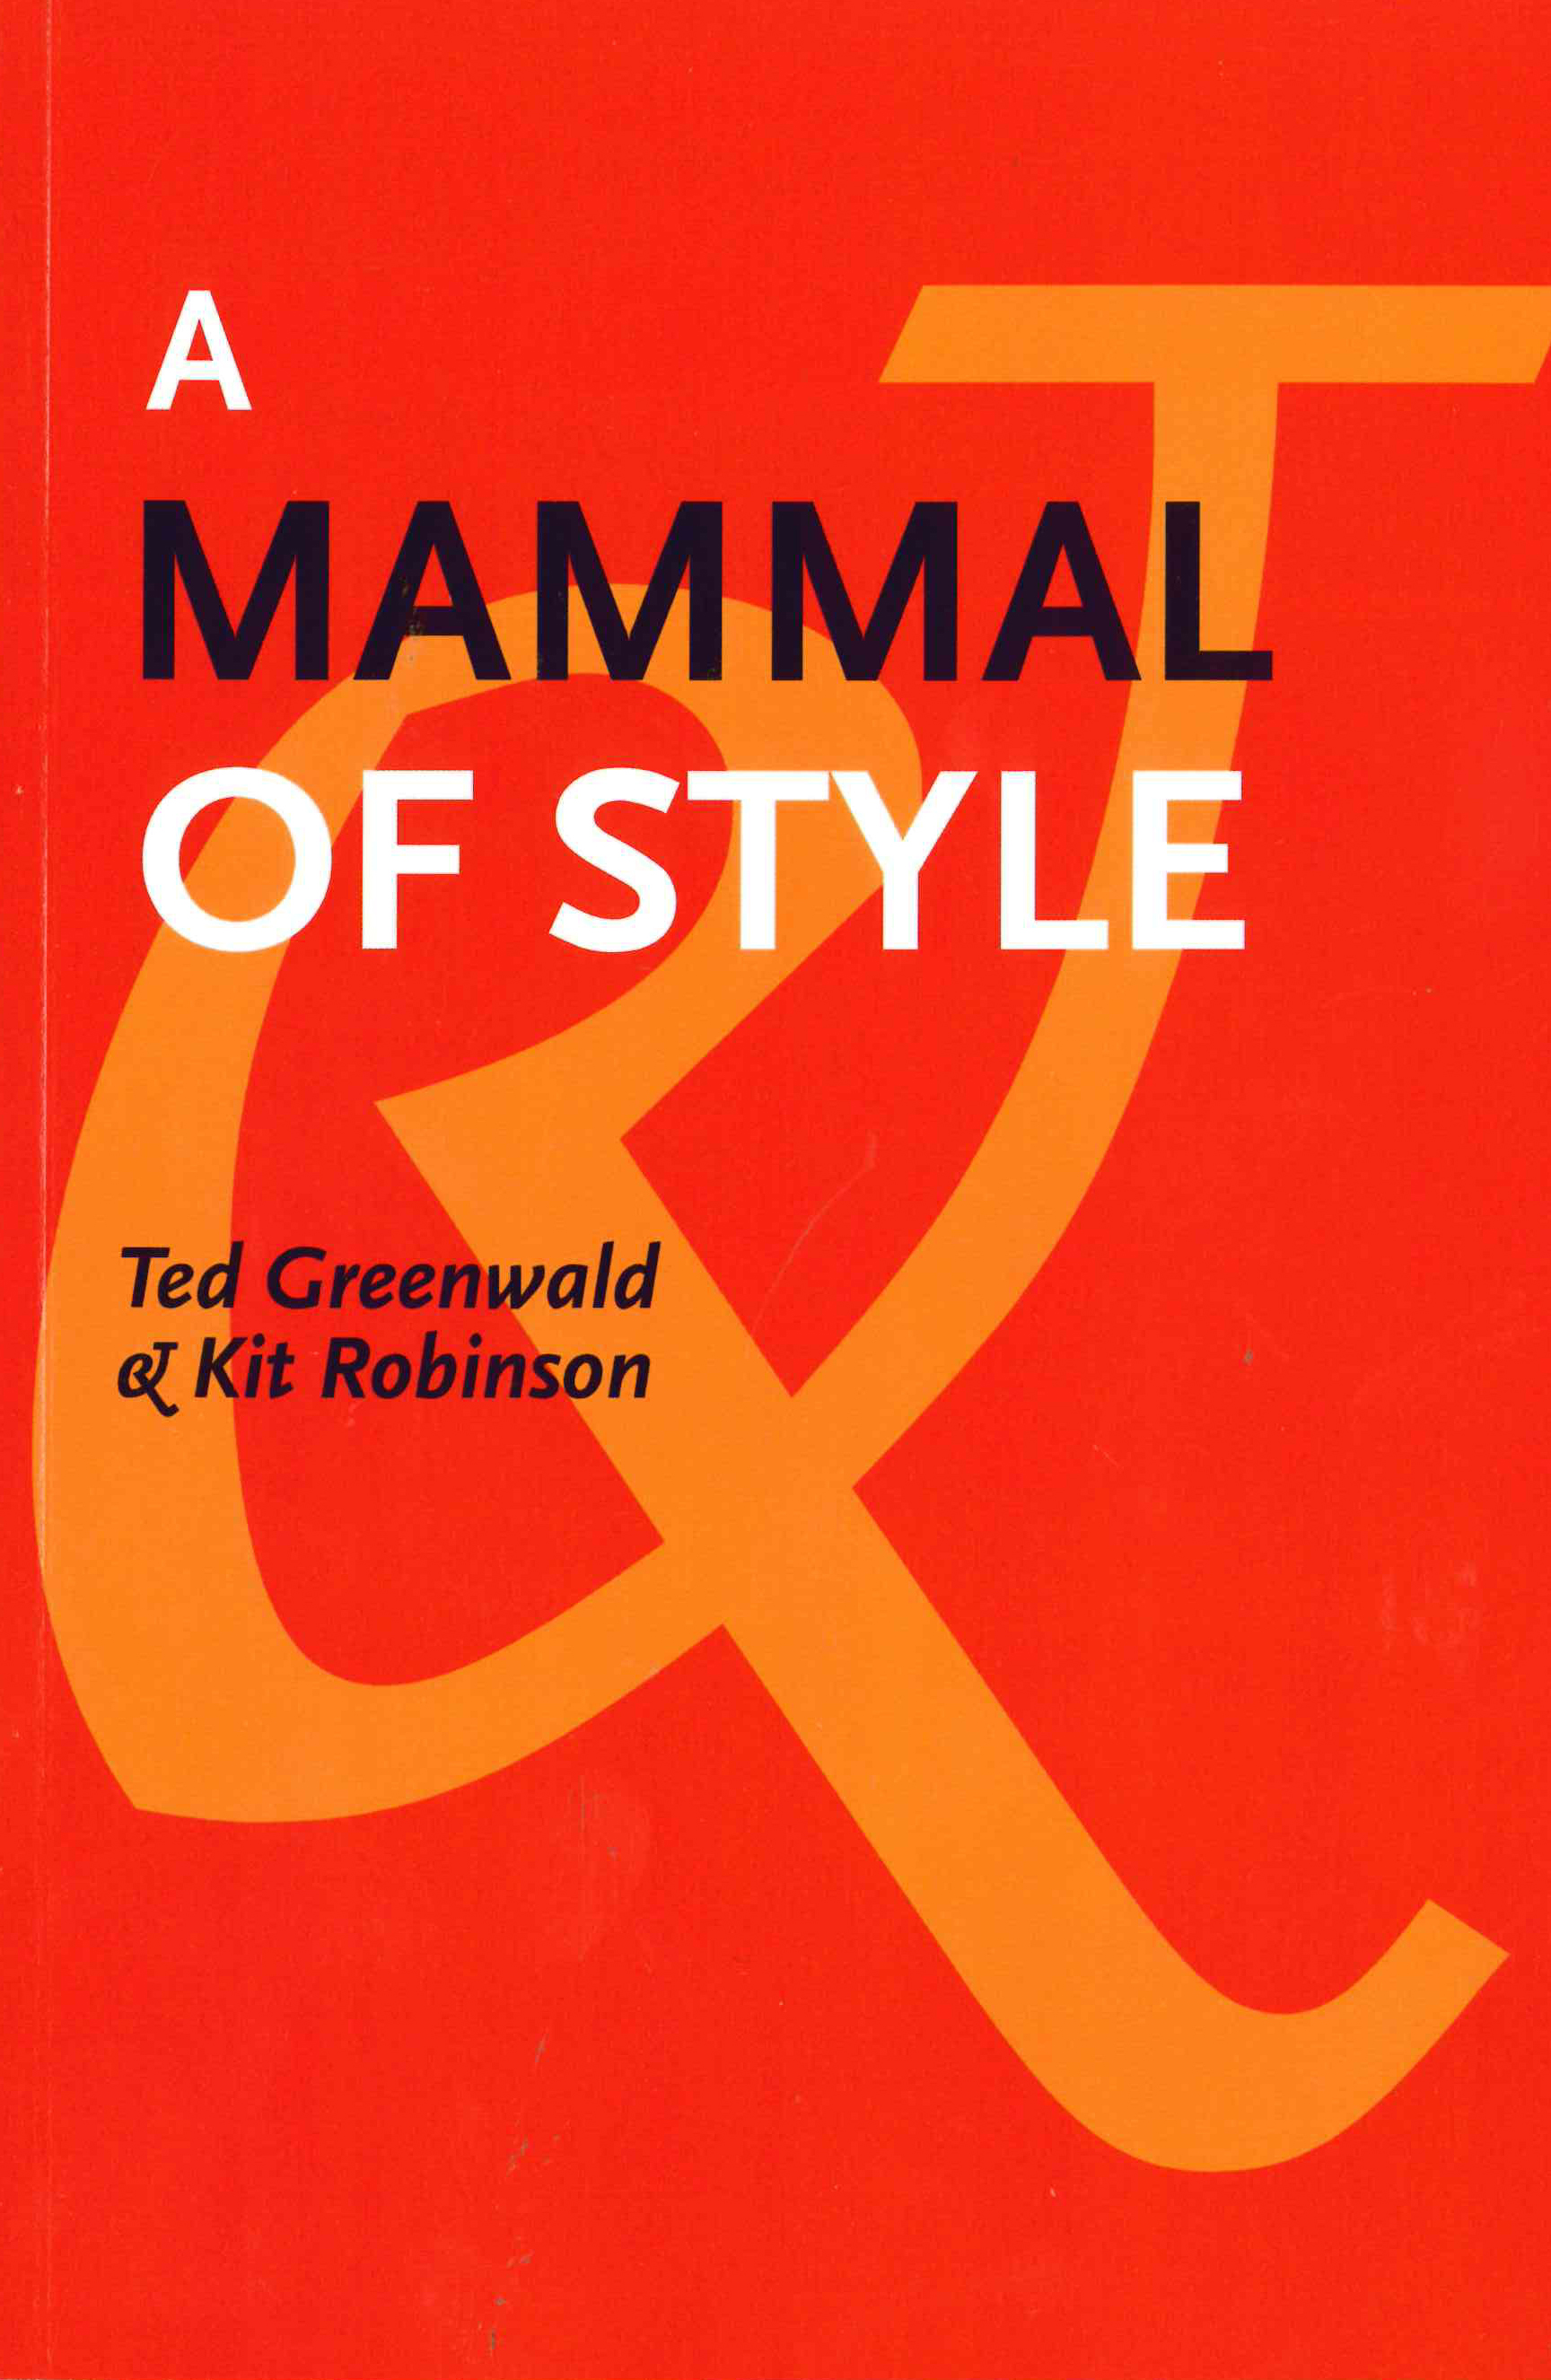 A Mammal of Style